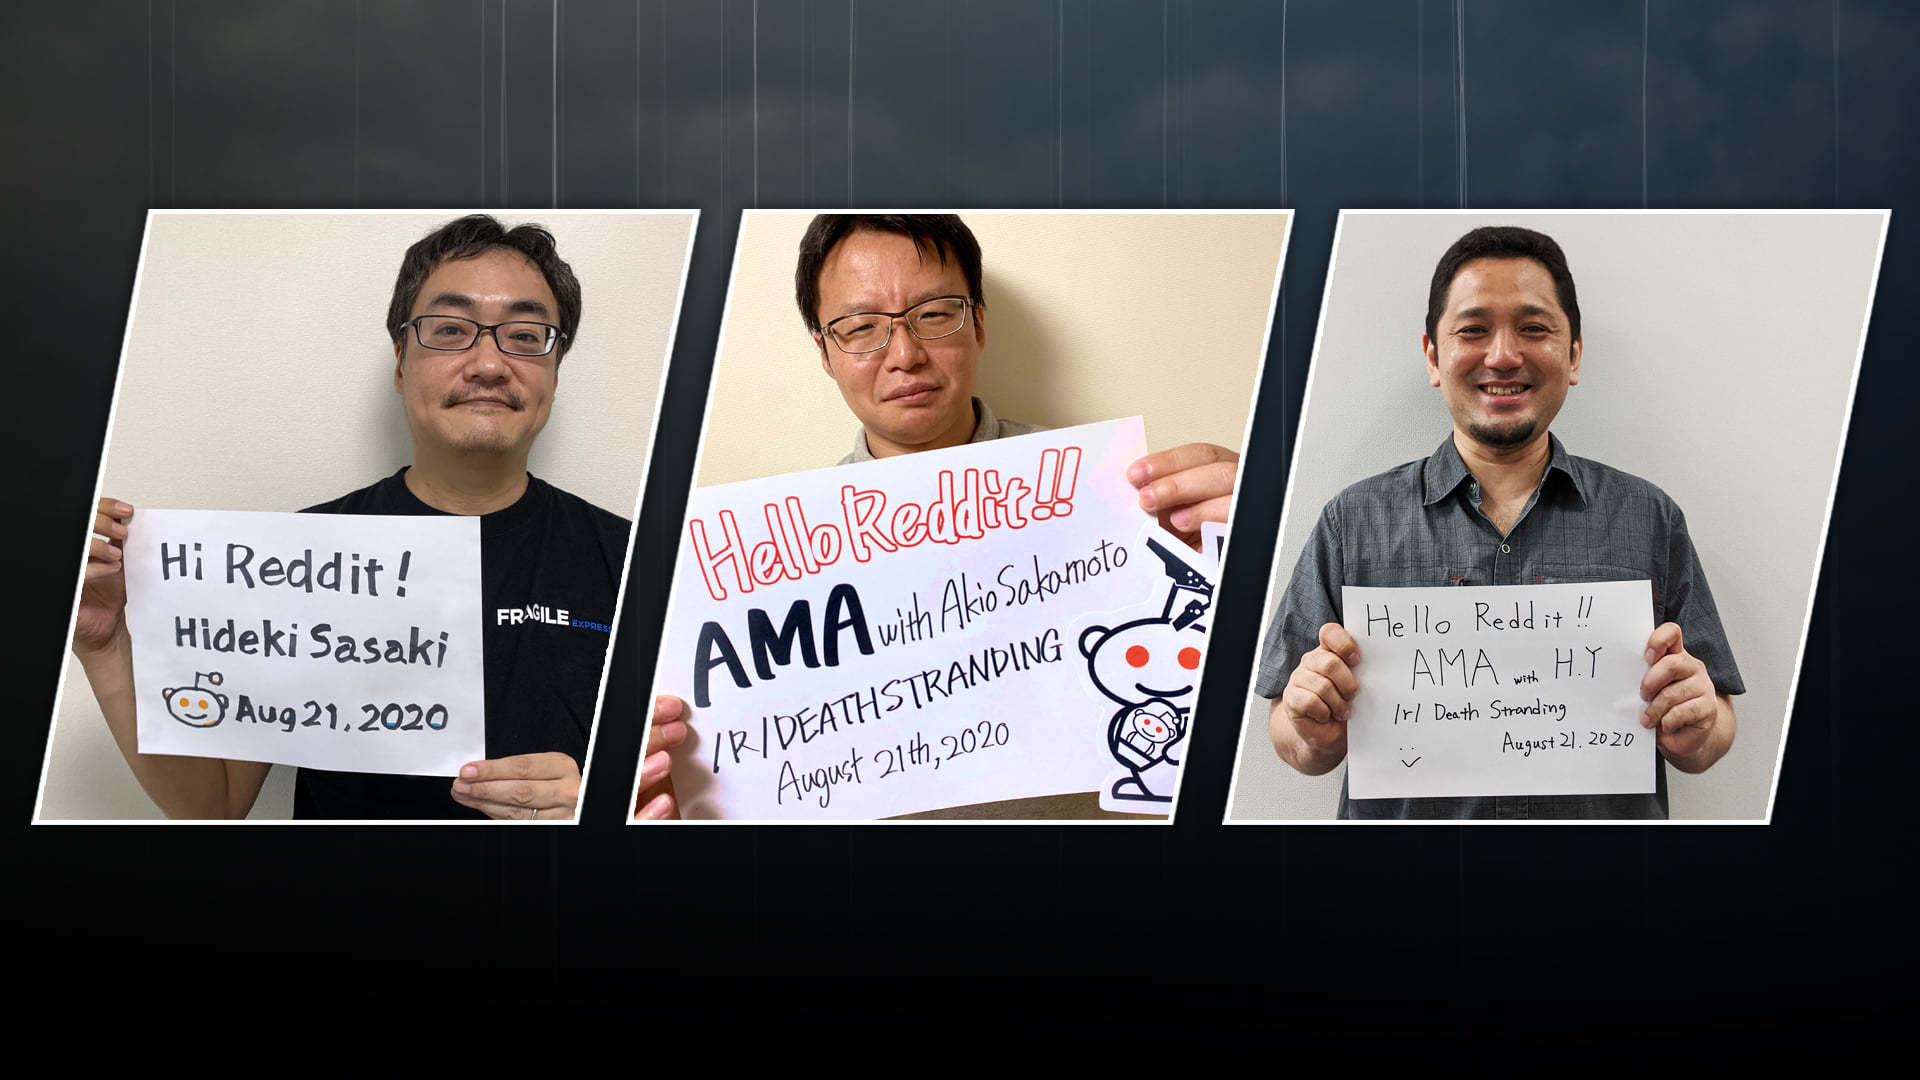 5 MINUTES TO GO! COME GET INVOLVED IN OUR NEXT KOJIMA PRODUCTIONS AMA